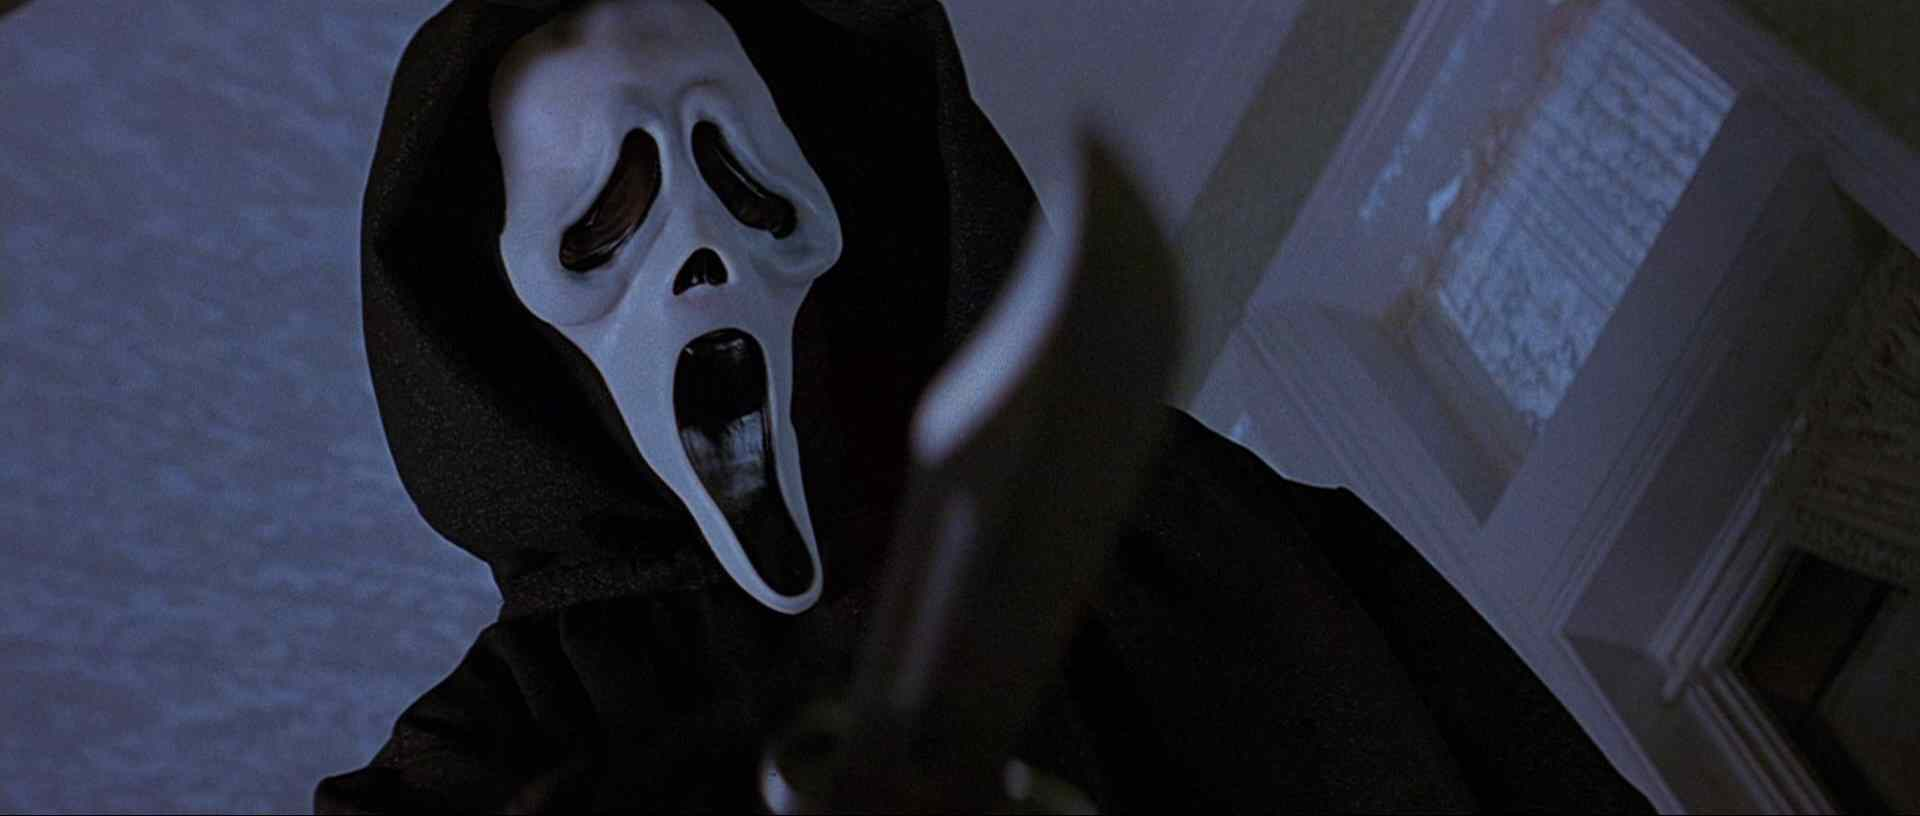 The famous ghostface killer in the scream movie franchise.